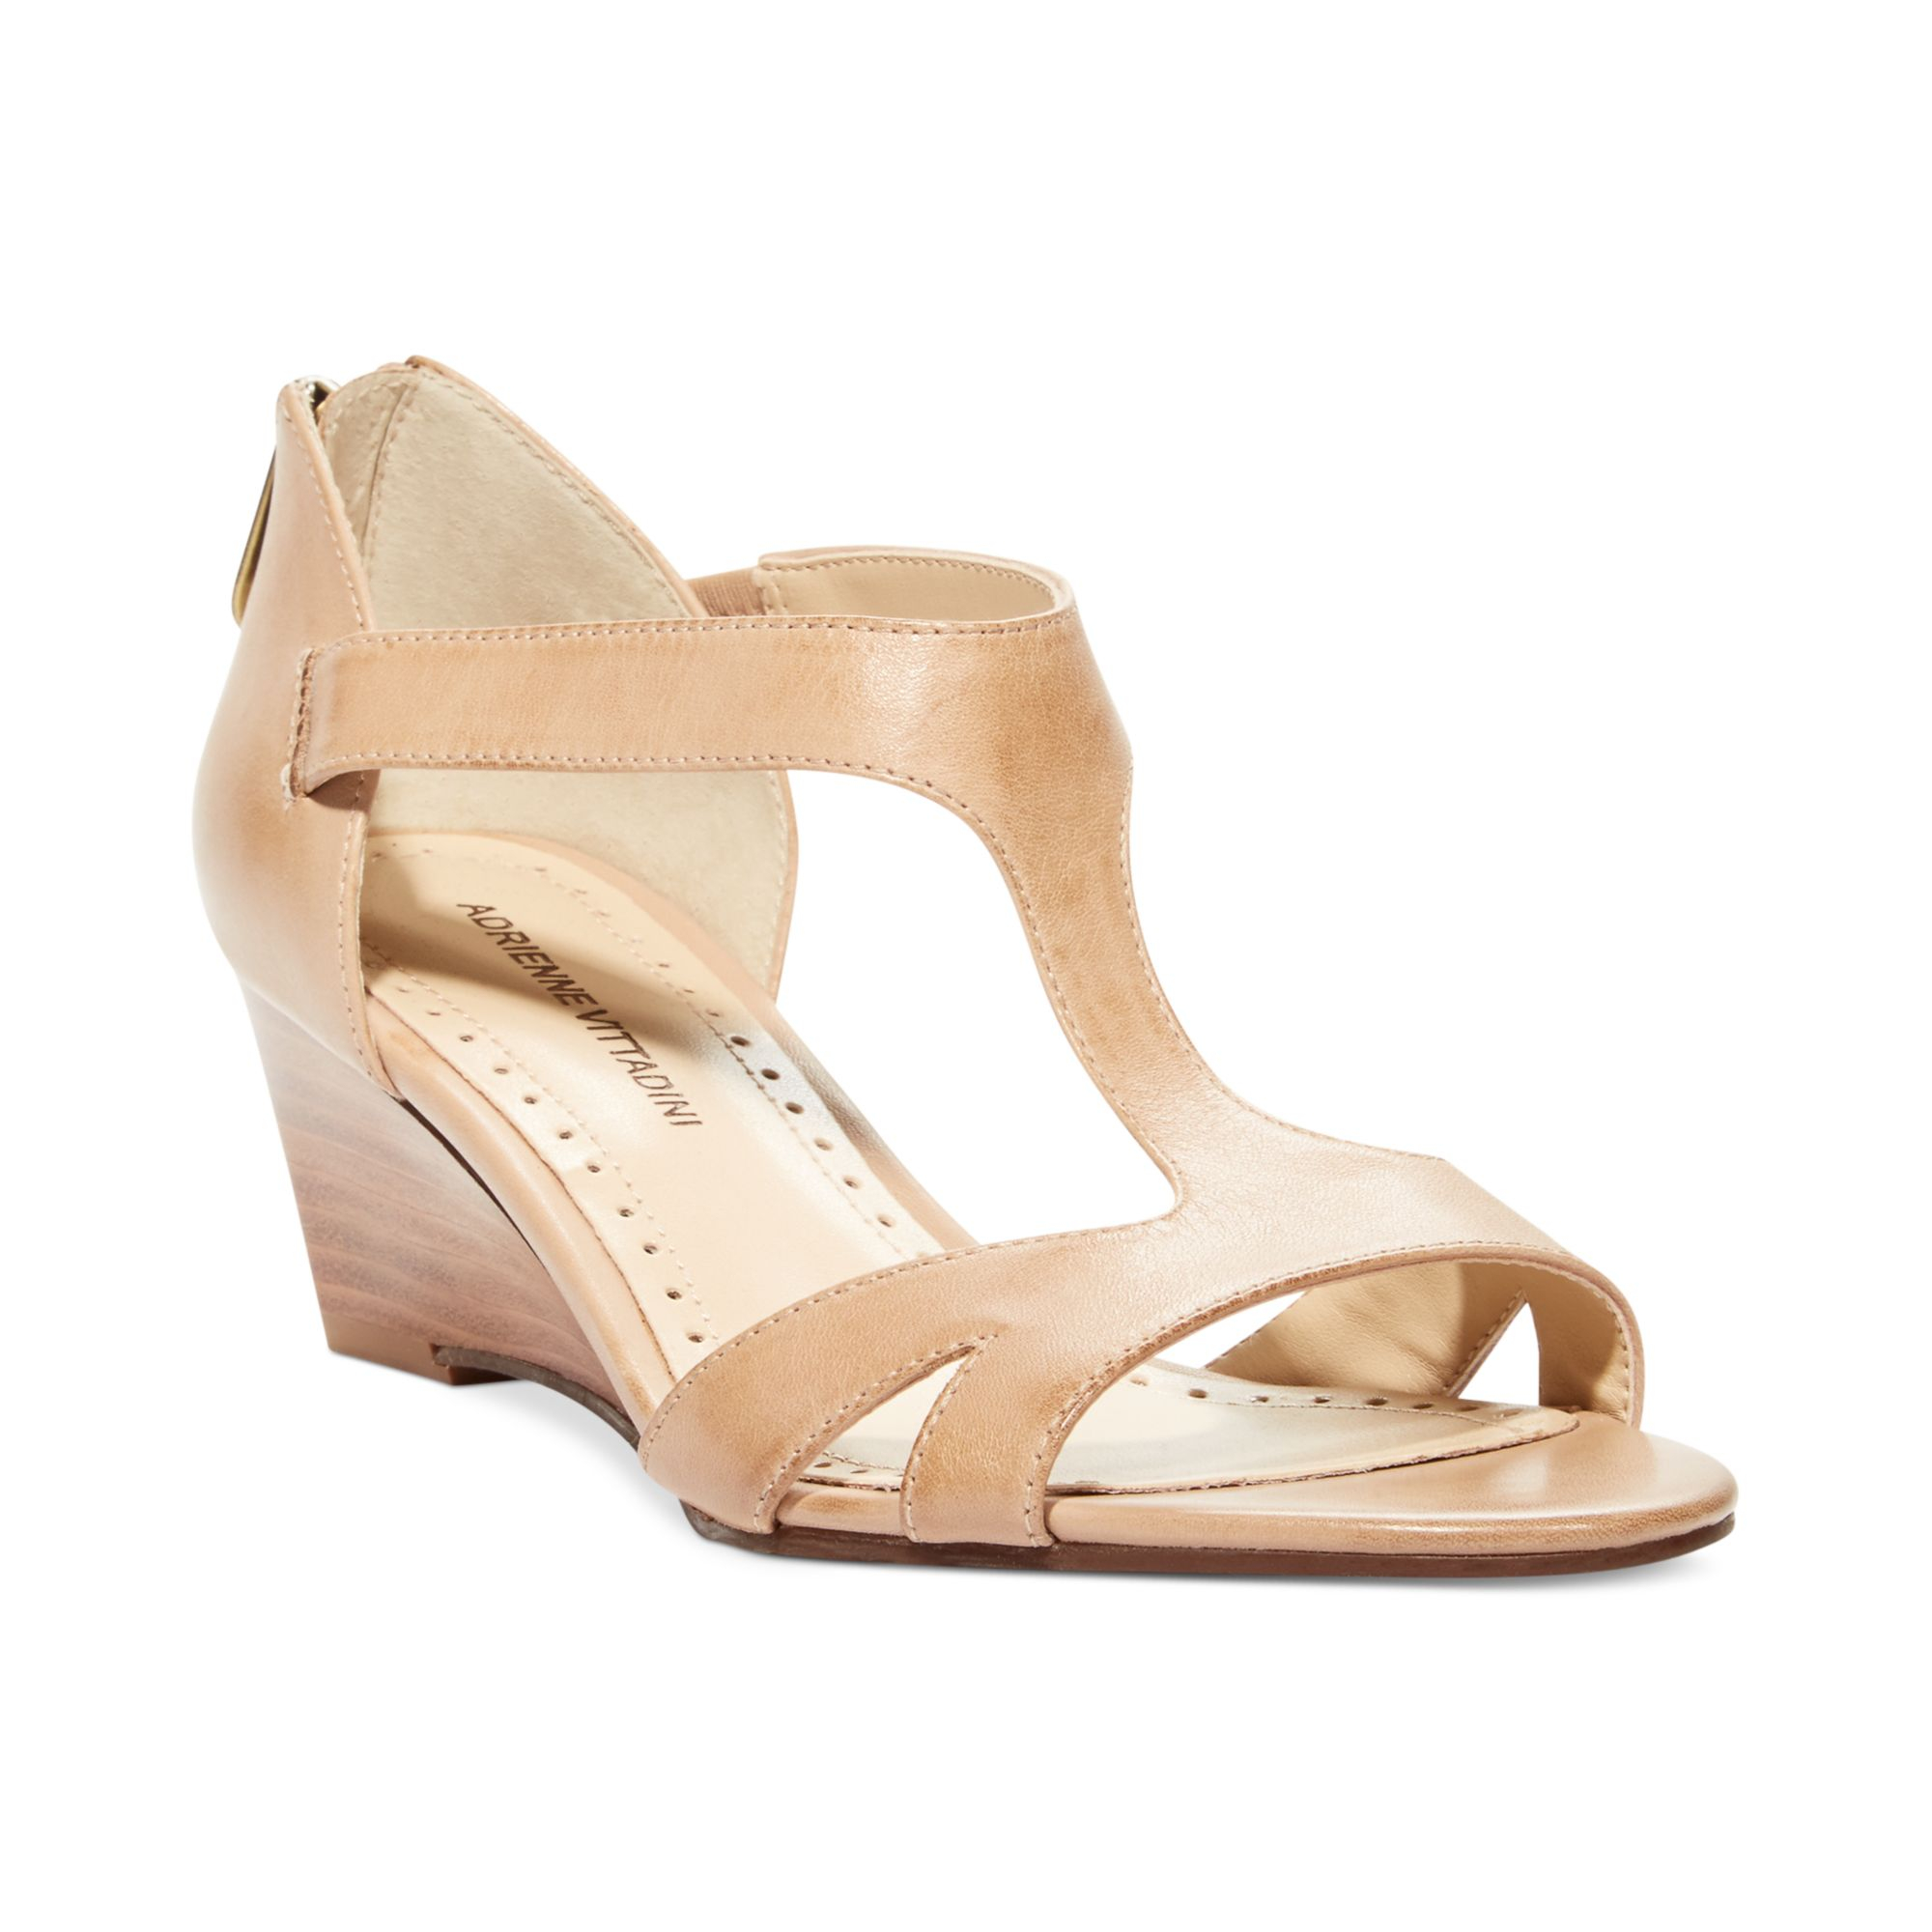 Adrienne Vittadini Cissy Mid Wedge Sandals In Natural Lyst